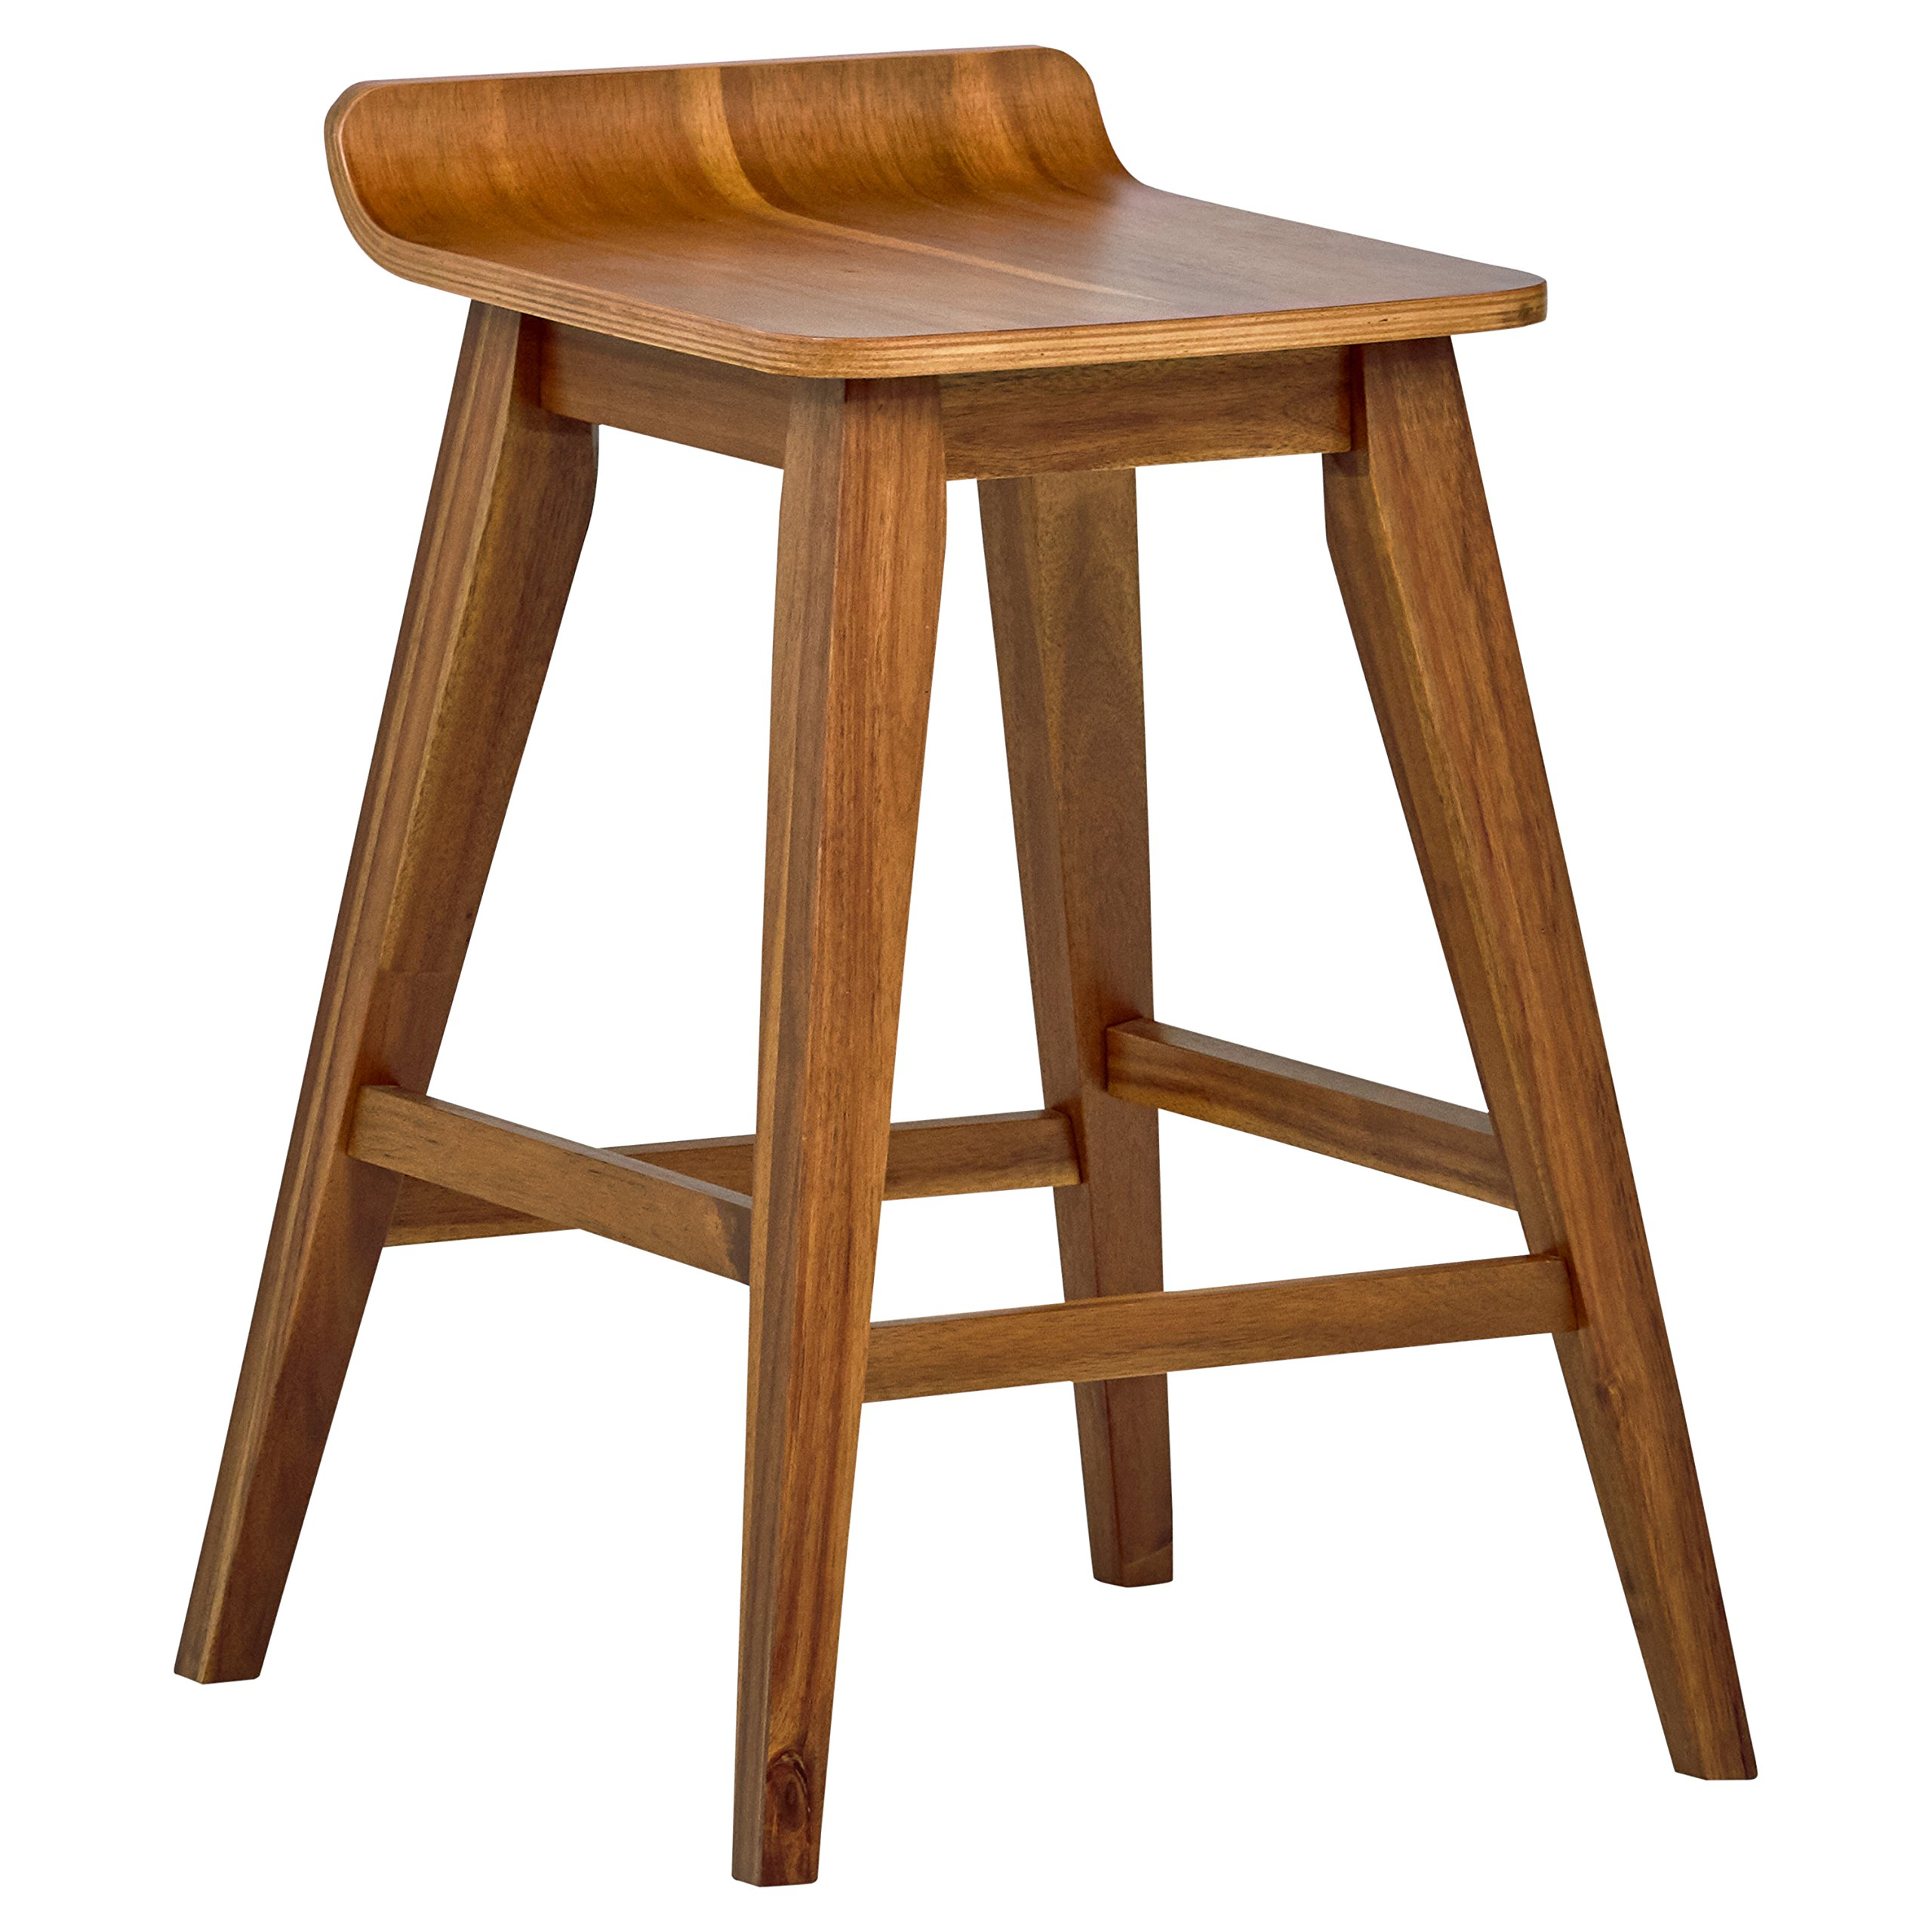 Stone & Beam Fremont Rustic Counter Stool, 25.5'' H, Natural